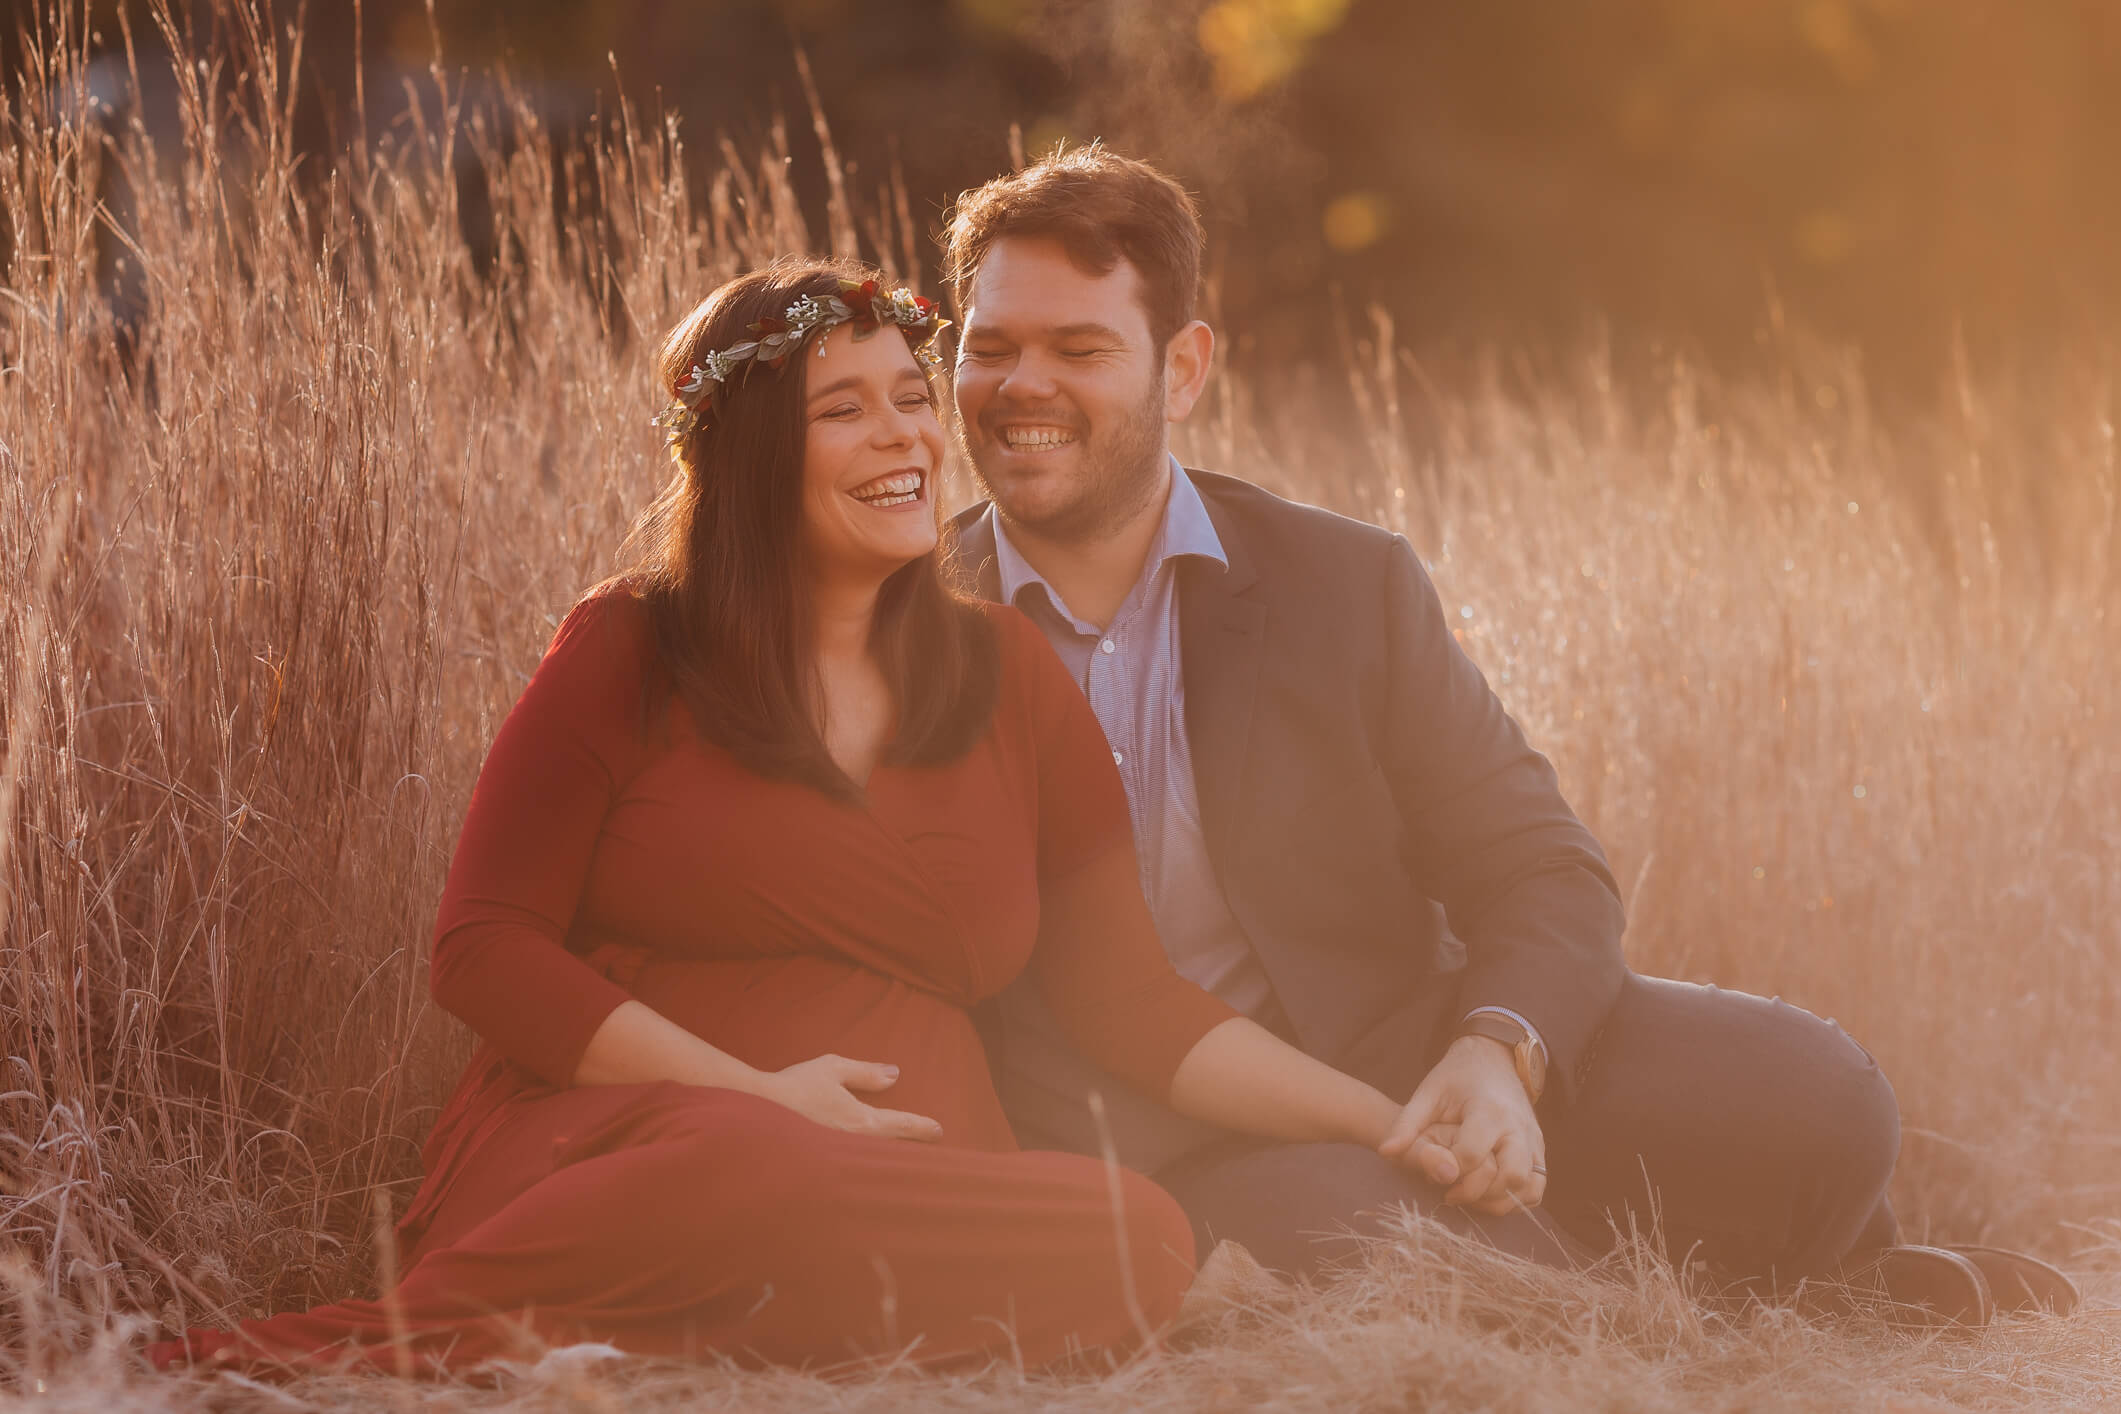 Pregnancy Maternity Photography - Fine Art Portraits, Boston-35-1